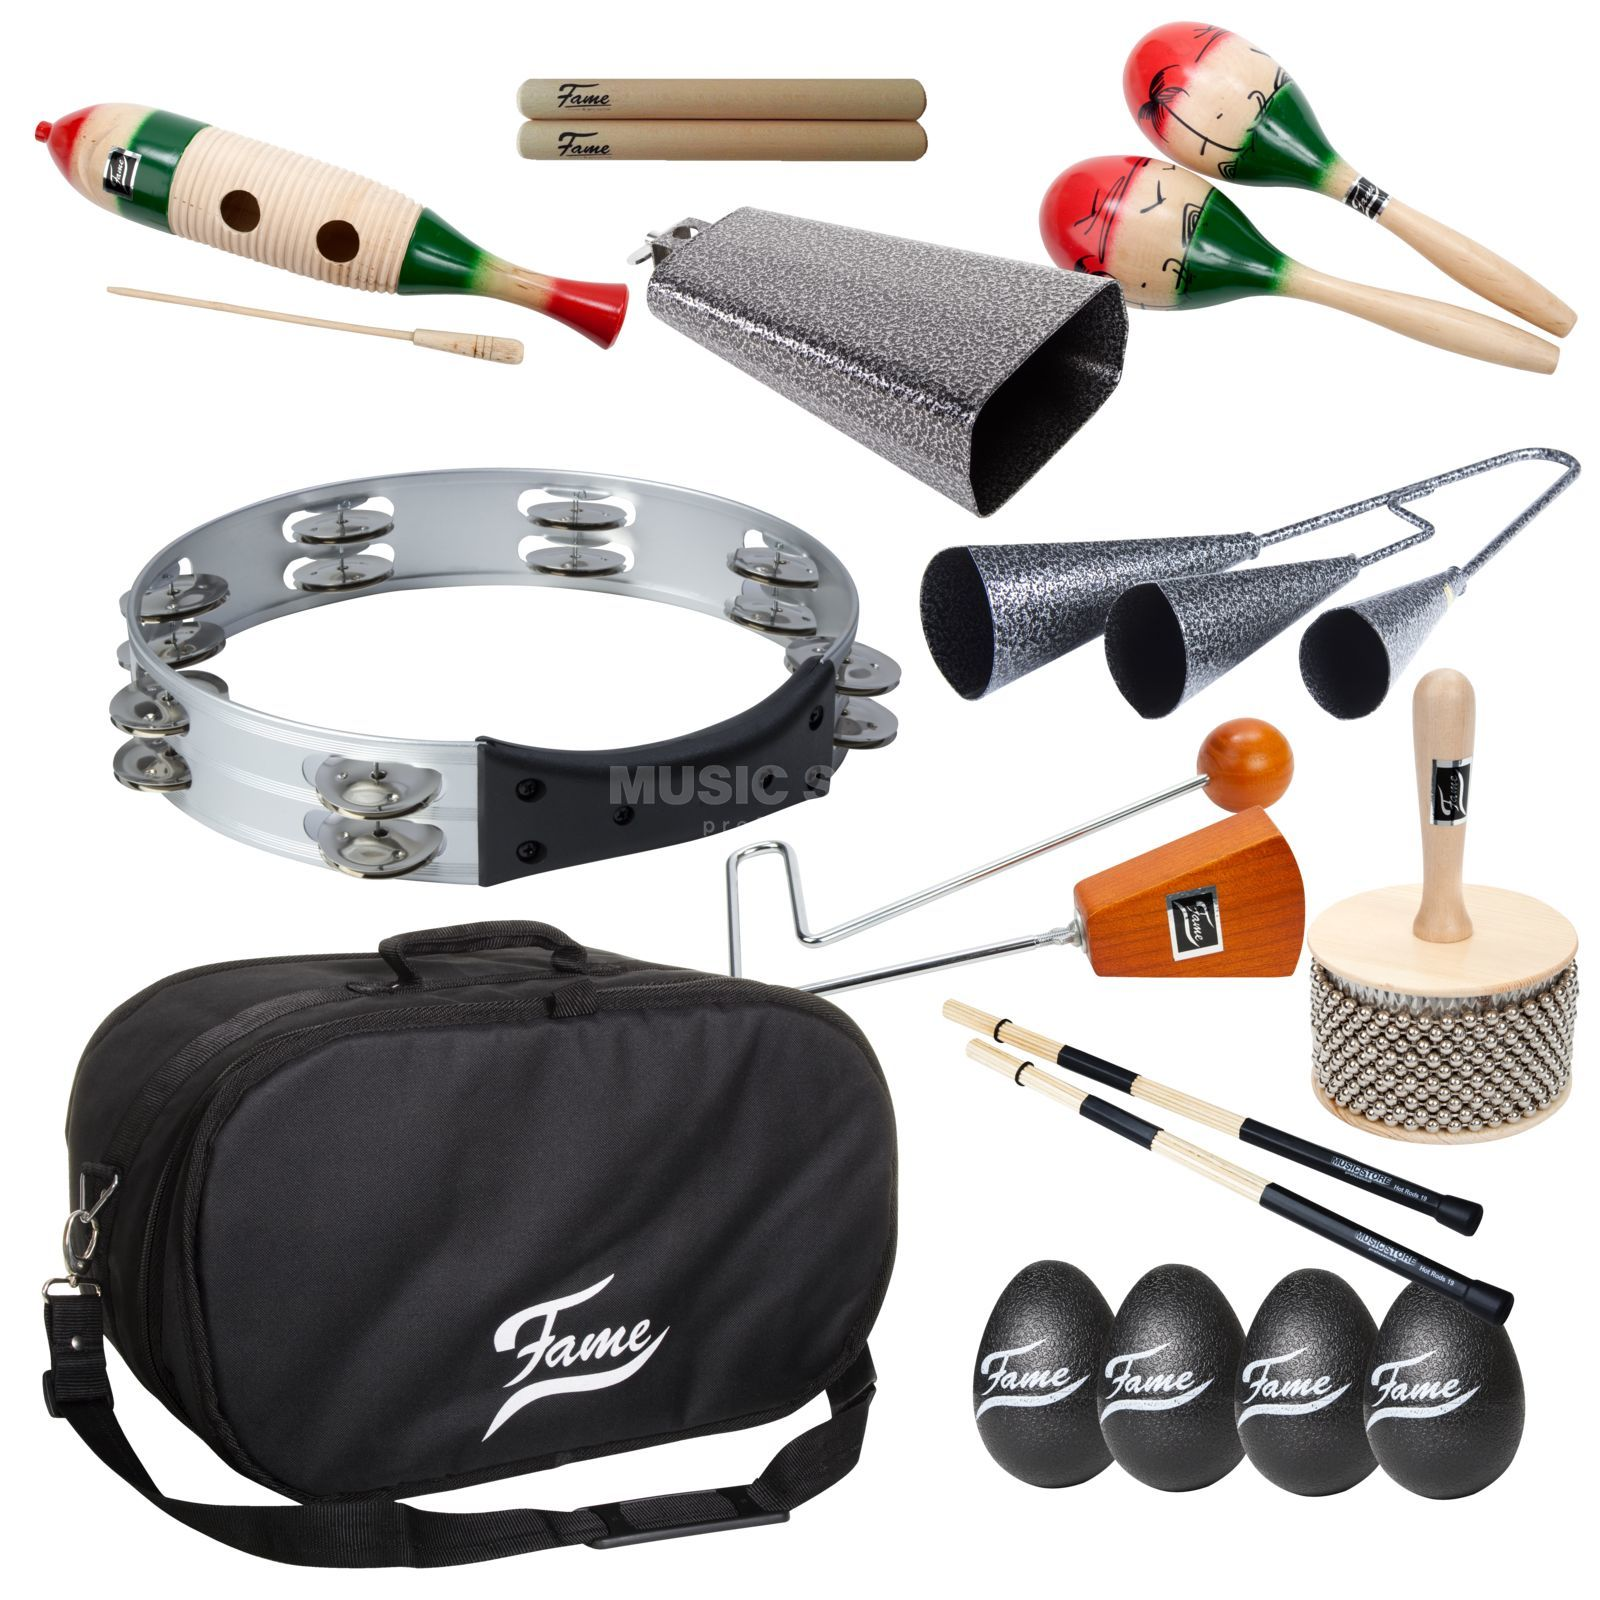 FAME Percussion Starter1 - Set Produktbild